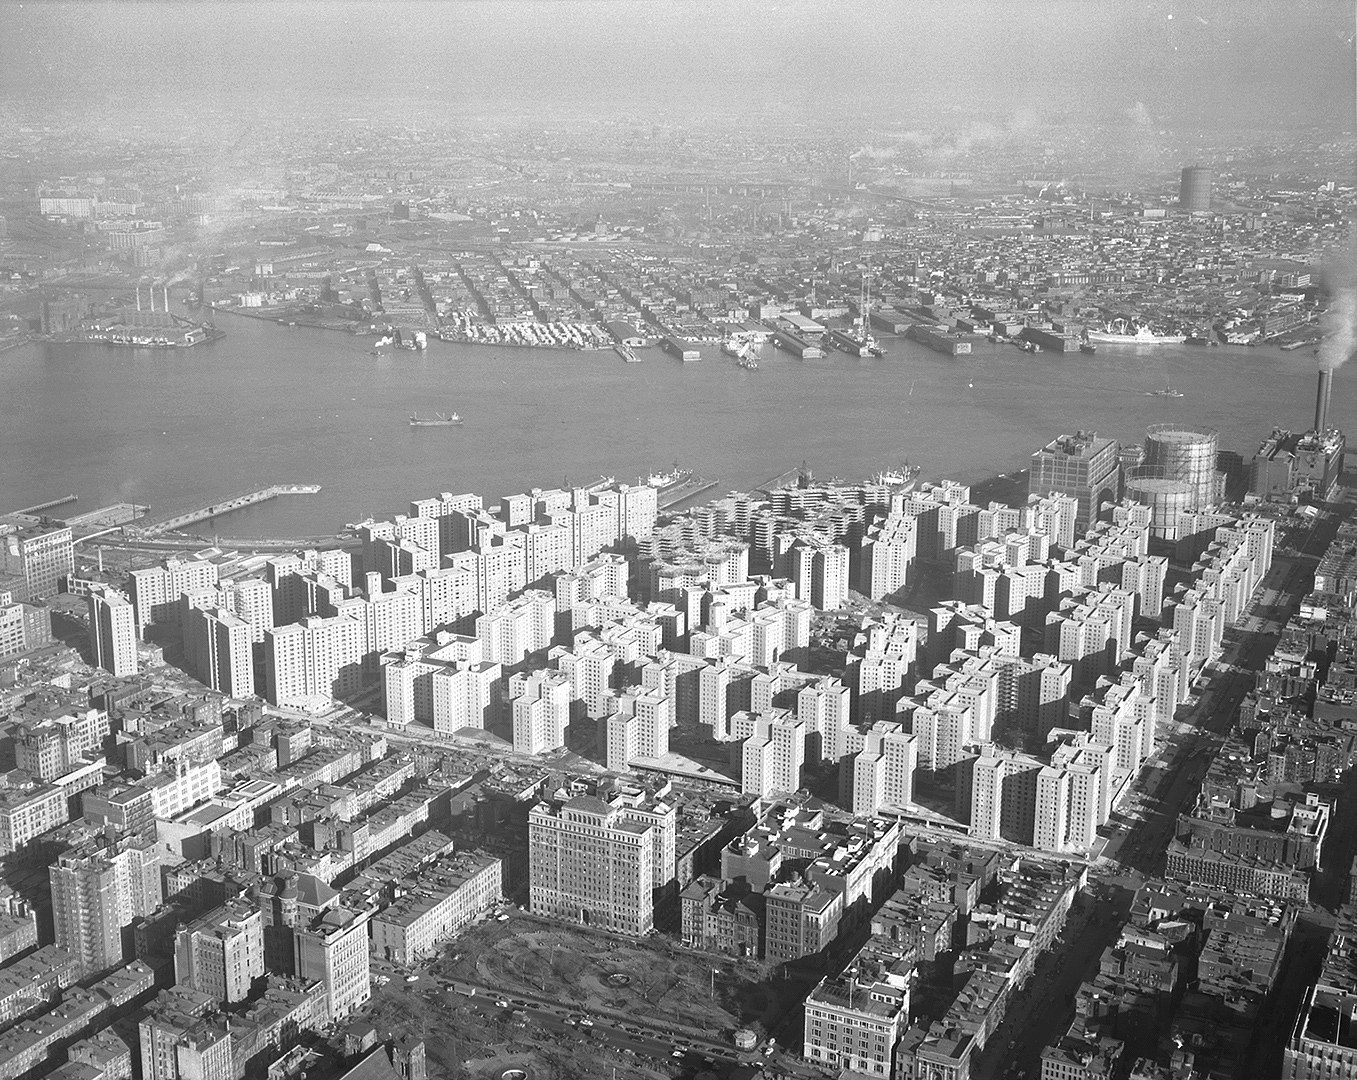 Construction site of Stuyvesant Town and Peter Cooper Village, 1947 - Photo provided by the NY State Archives